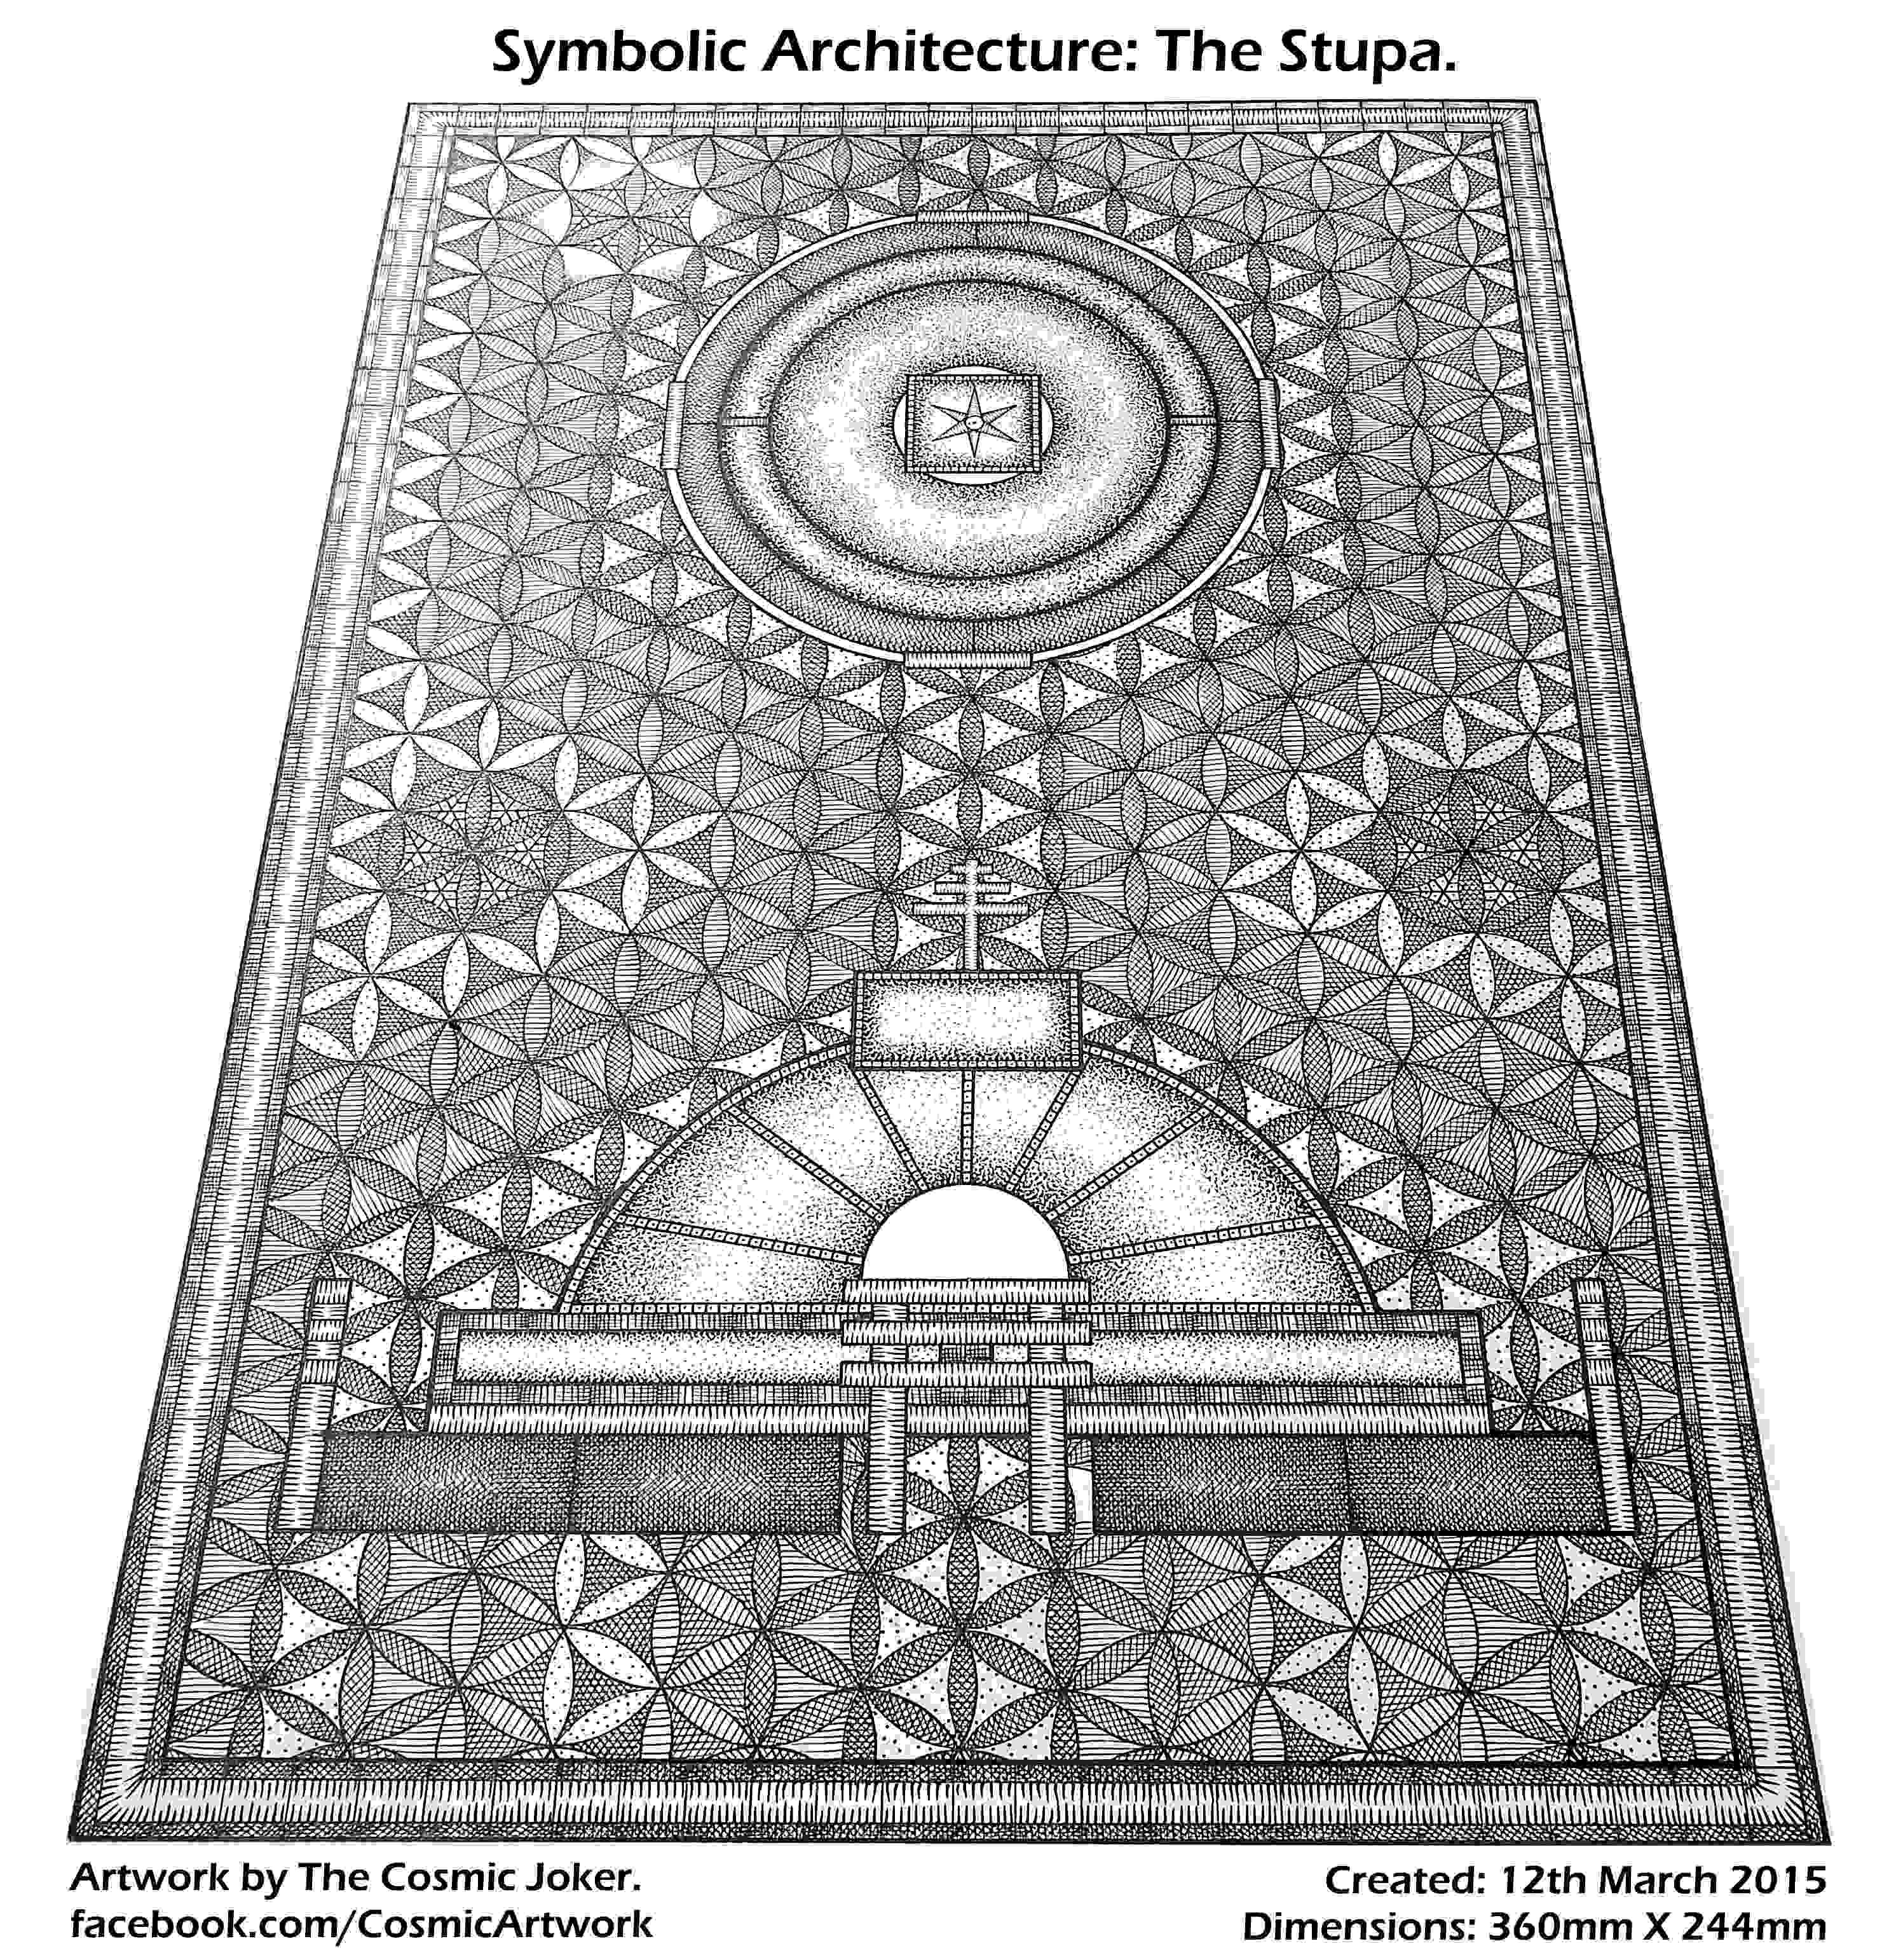 symbolic architecture the stupa the oldest stone structures the oldest stone structures in india ancient cosmological symbolism preserved in stone heart emoticon created march 2015 dimensions x biocorpaavc